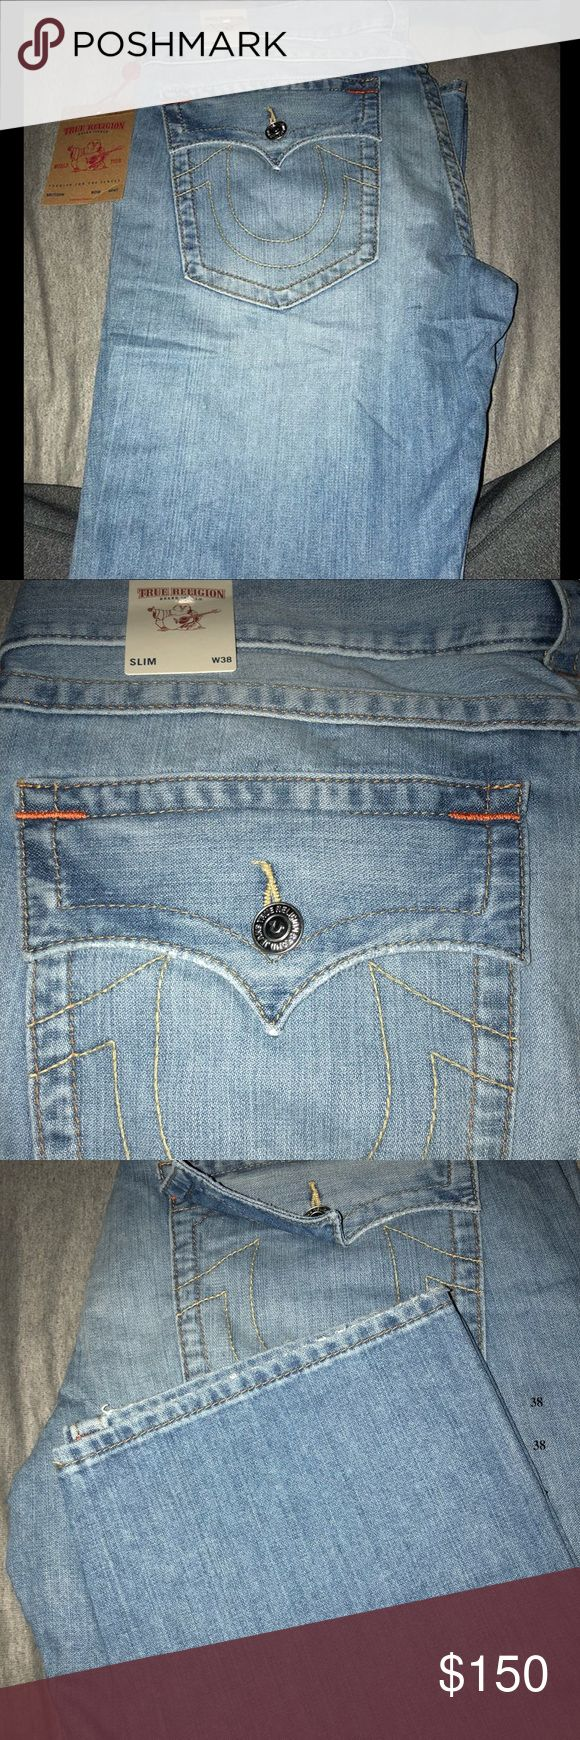 True Religion men jeans Brand new with tags! Size:38 slim straight True Religion Jeans Slim Straight #mensjeansbrands